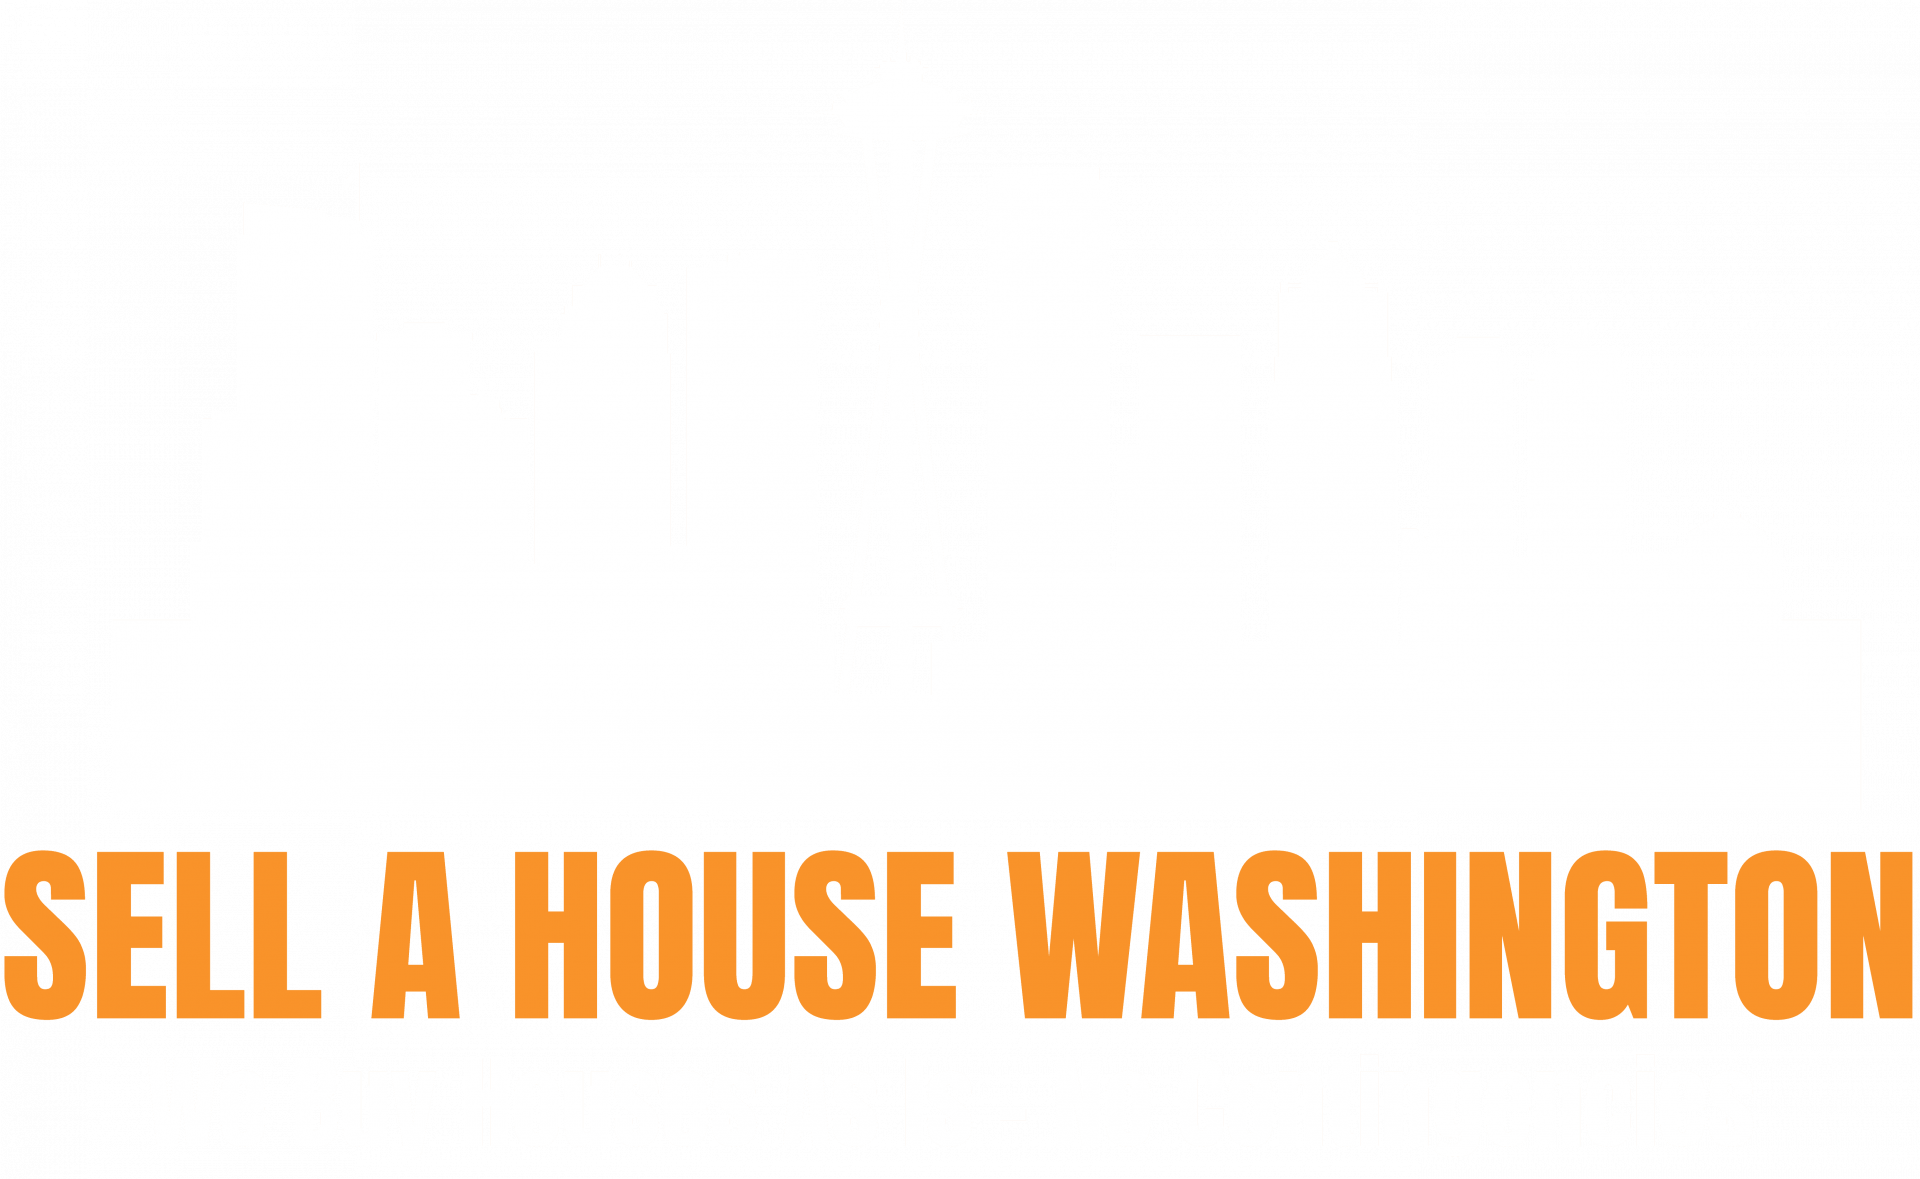 SellAHouseWashington logo